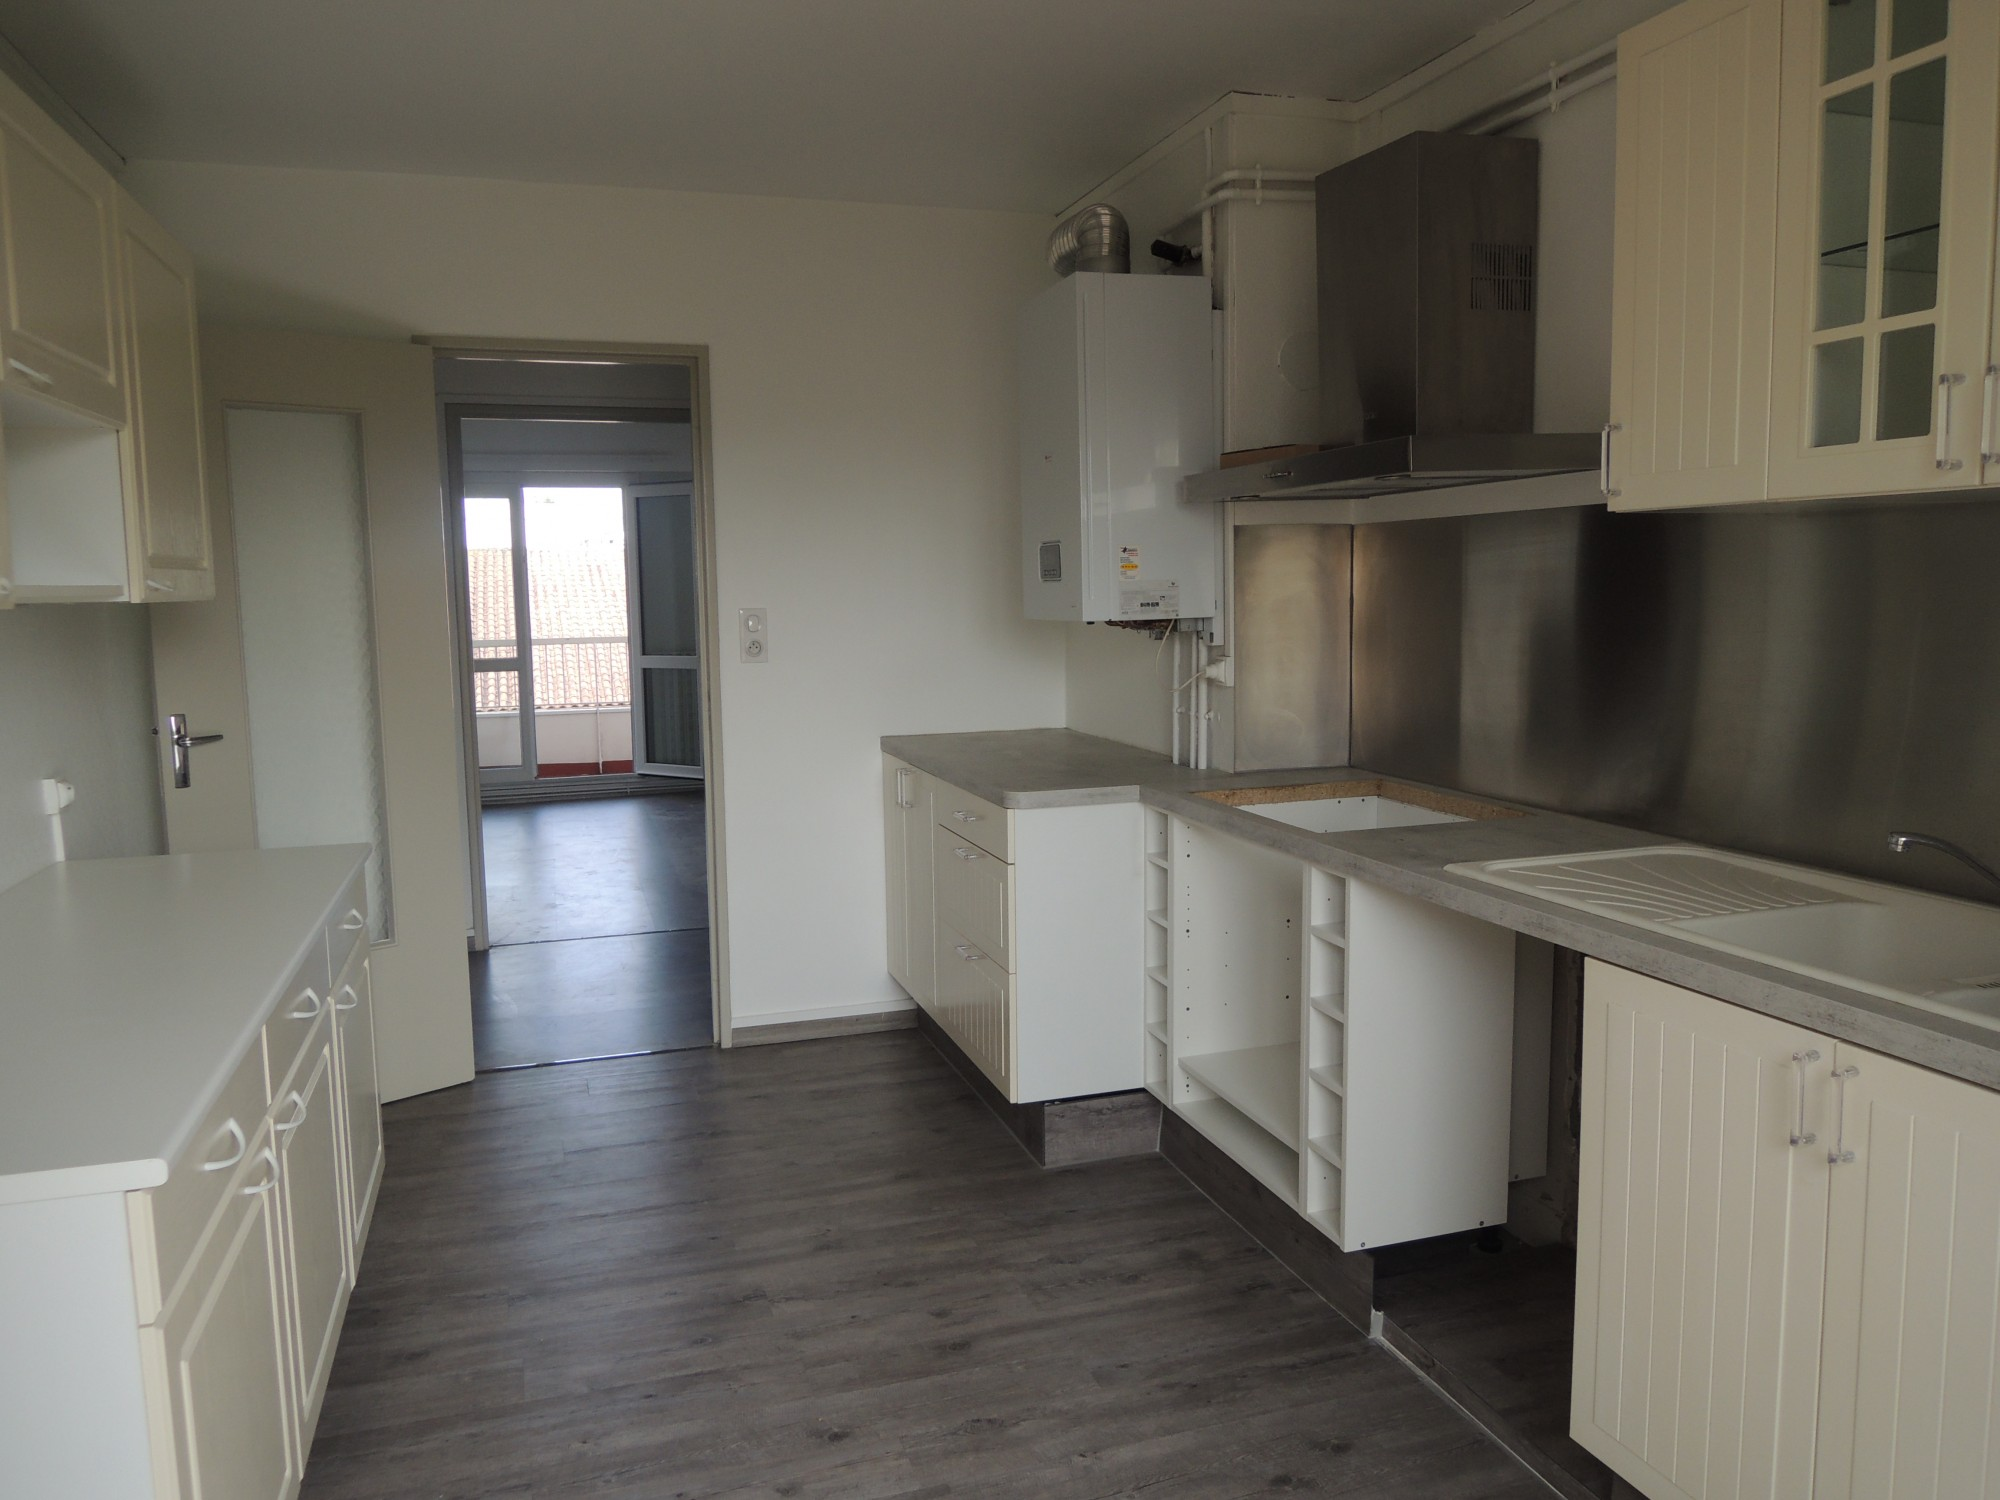 Location appartement t6 f6 bordeaux caud ran bru immobilier for Location appartement bordeaux oralia